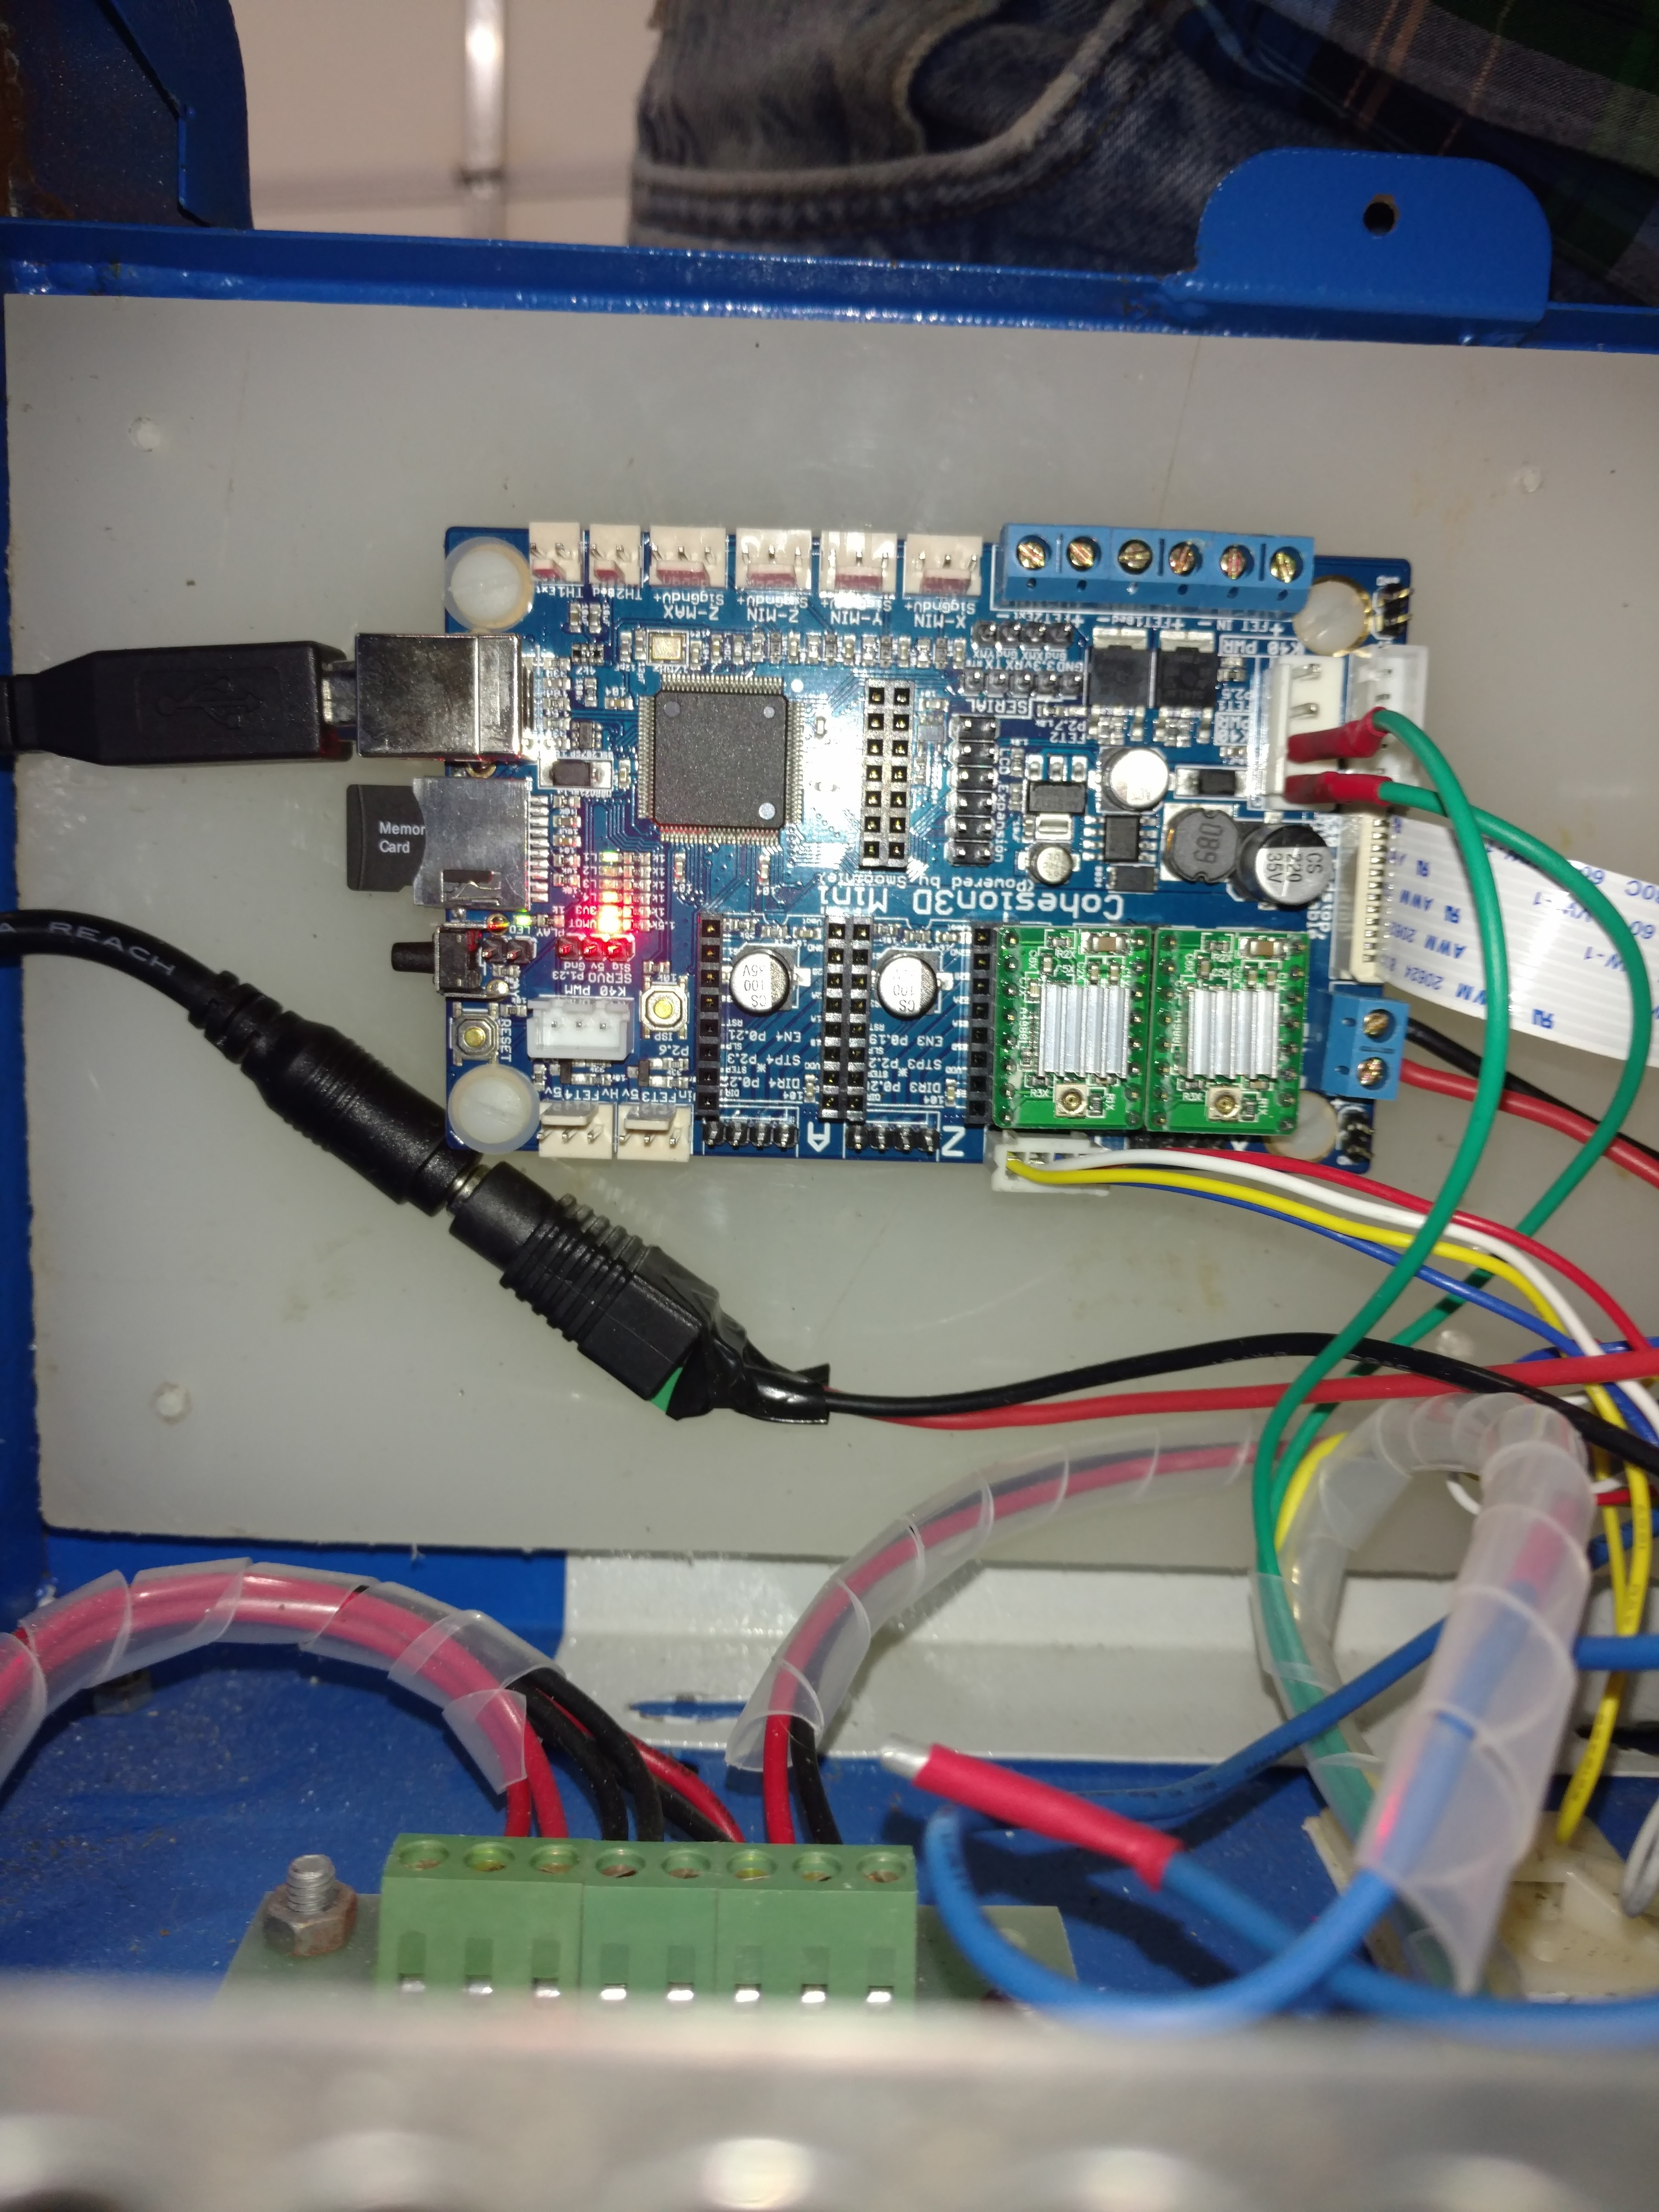 Laser not firing from board - Board Configuration and Setup